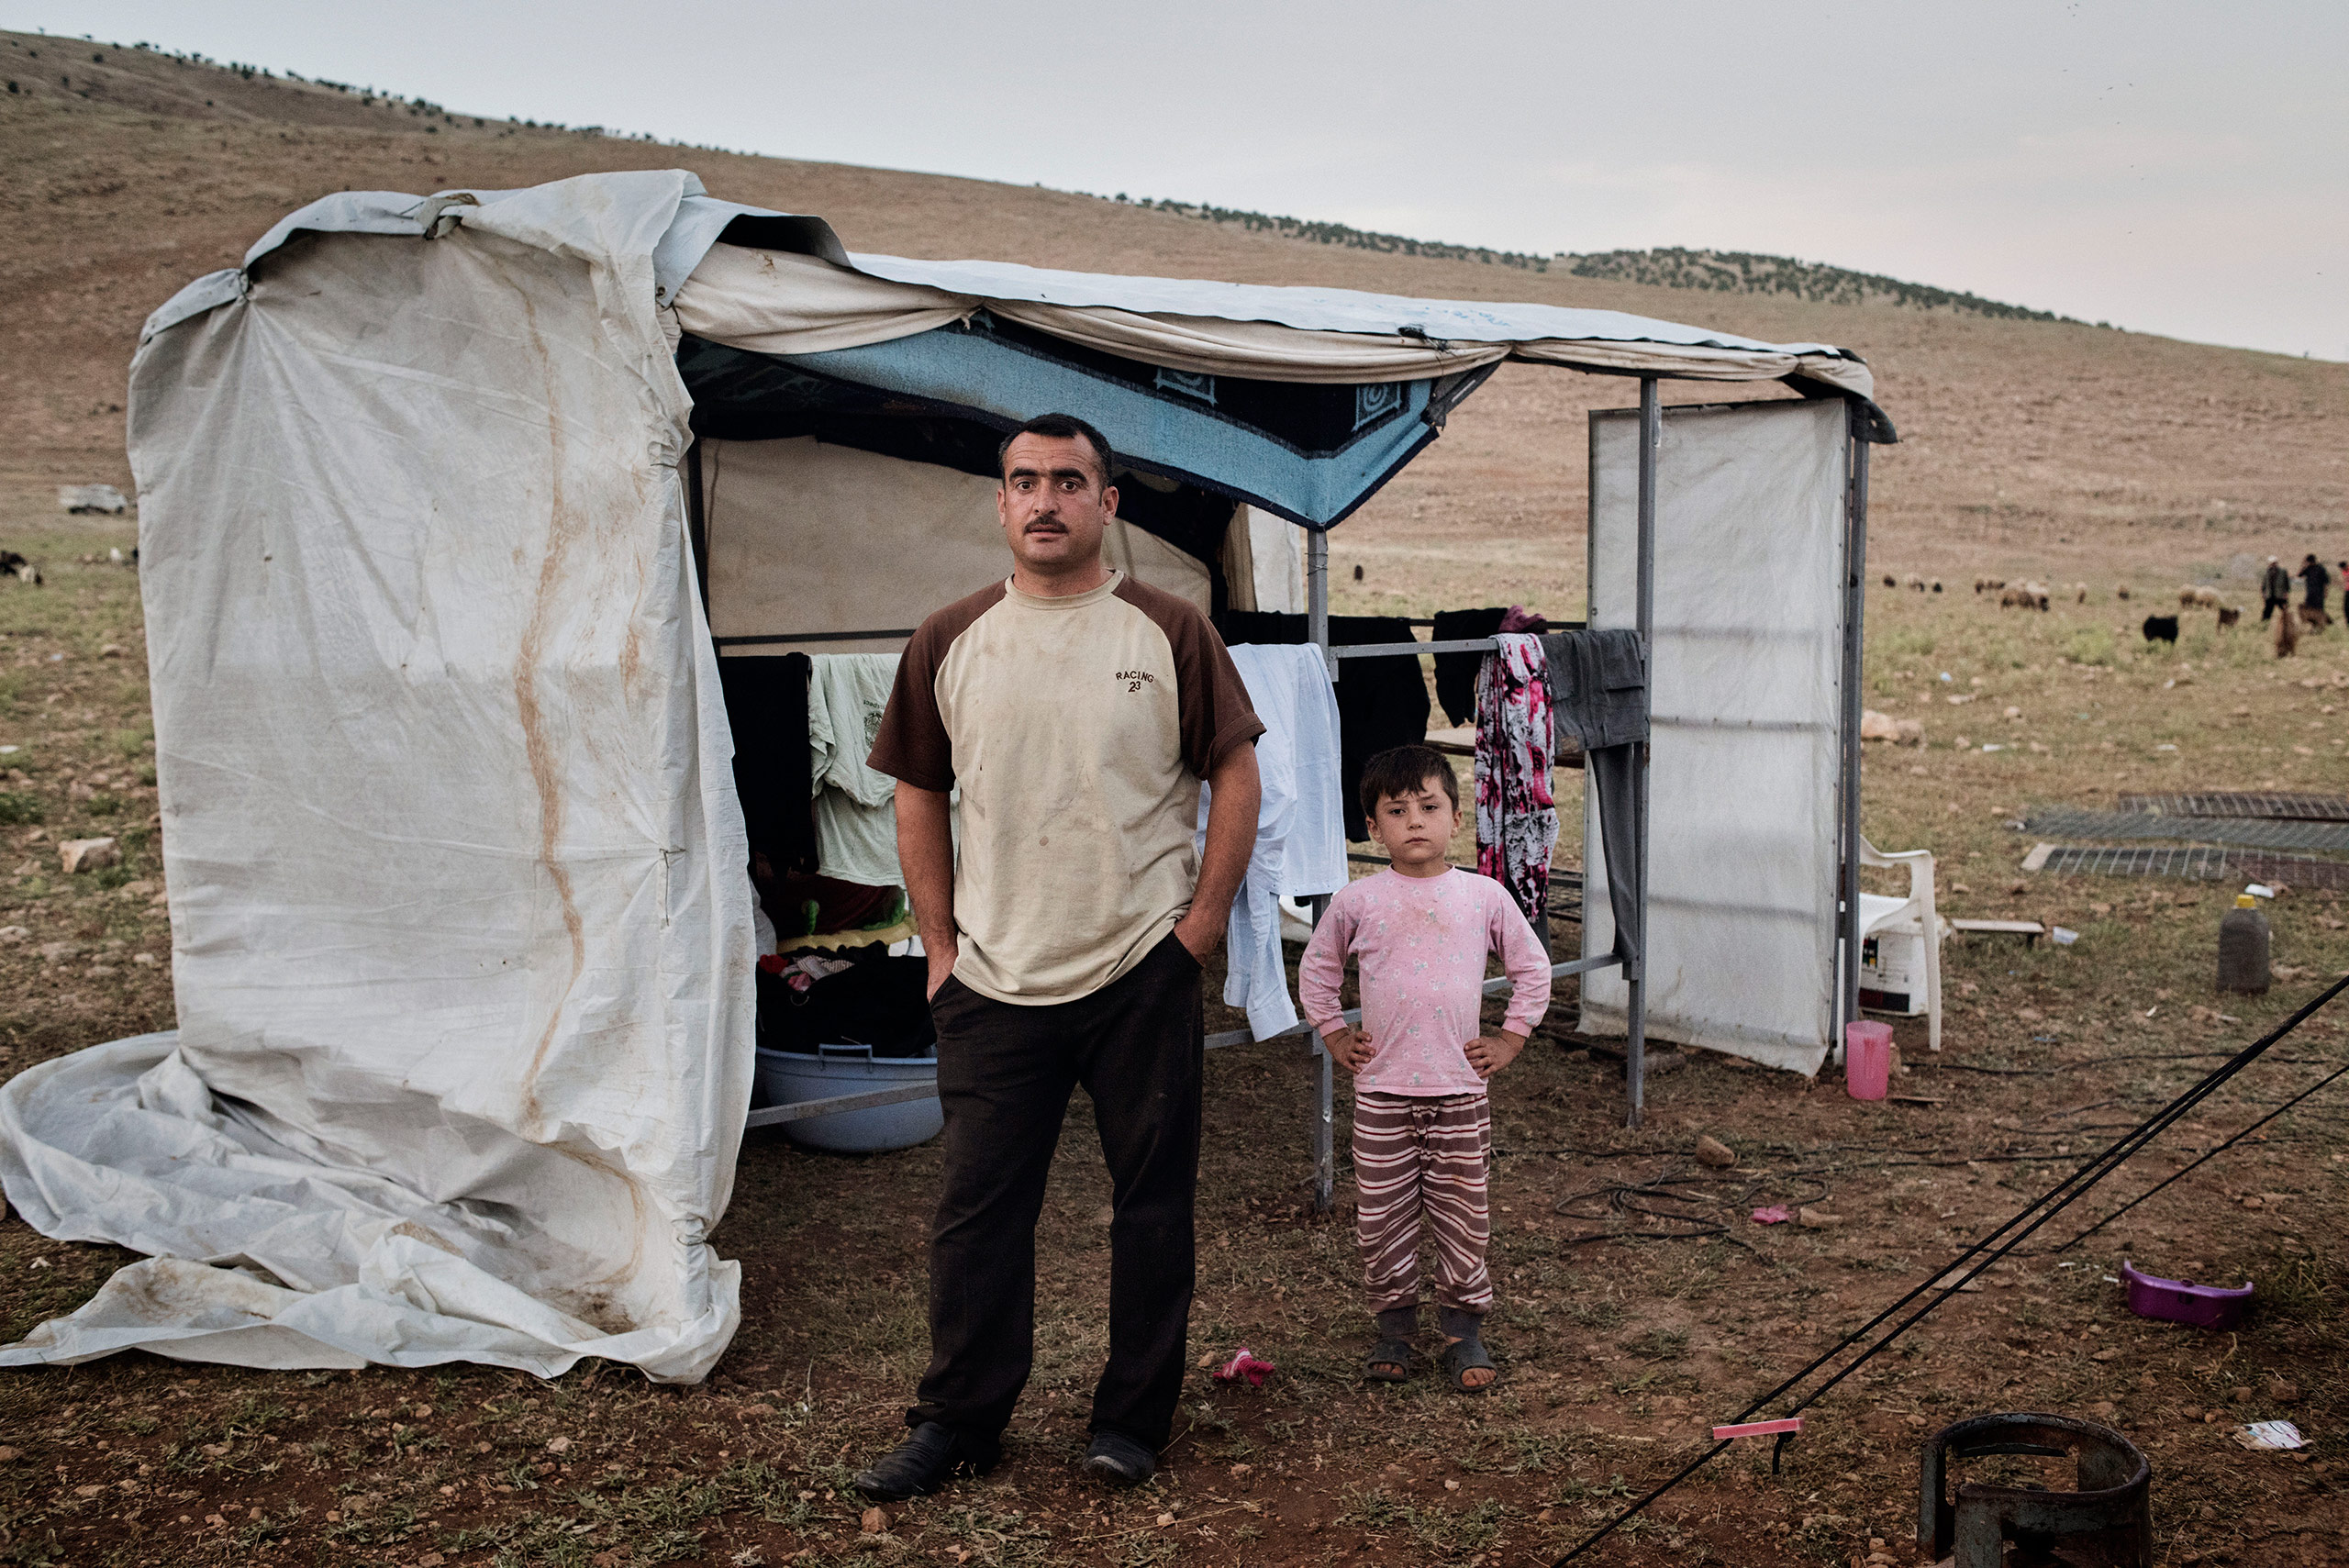 Qubad Miqdad Murad, a police officer in his thirties, stands in a camp for internally displaced people near the Iraqi town of Sinjar, May 13, 2016. Murad returned to Sinjar after Kurdish forces recaptured it from ISIS in Nov. 2015, but he since decided to move to the IDP camp in the mountains above Sinjar, fearing for the safety of his family as ISIS continues to shell the area.From  Yuri Kozyrev: On the Front Lines of the War Against ISIS